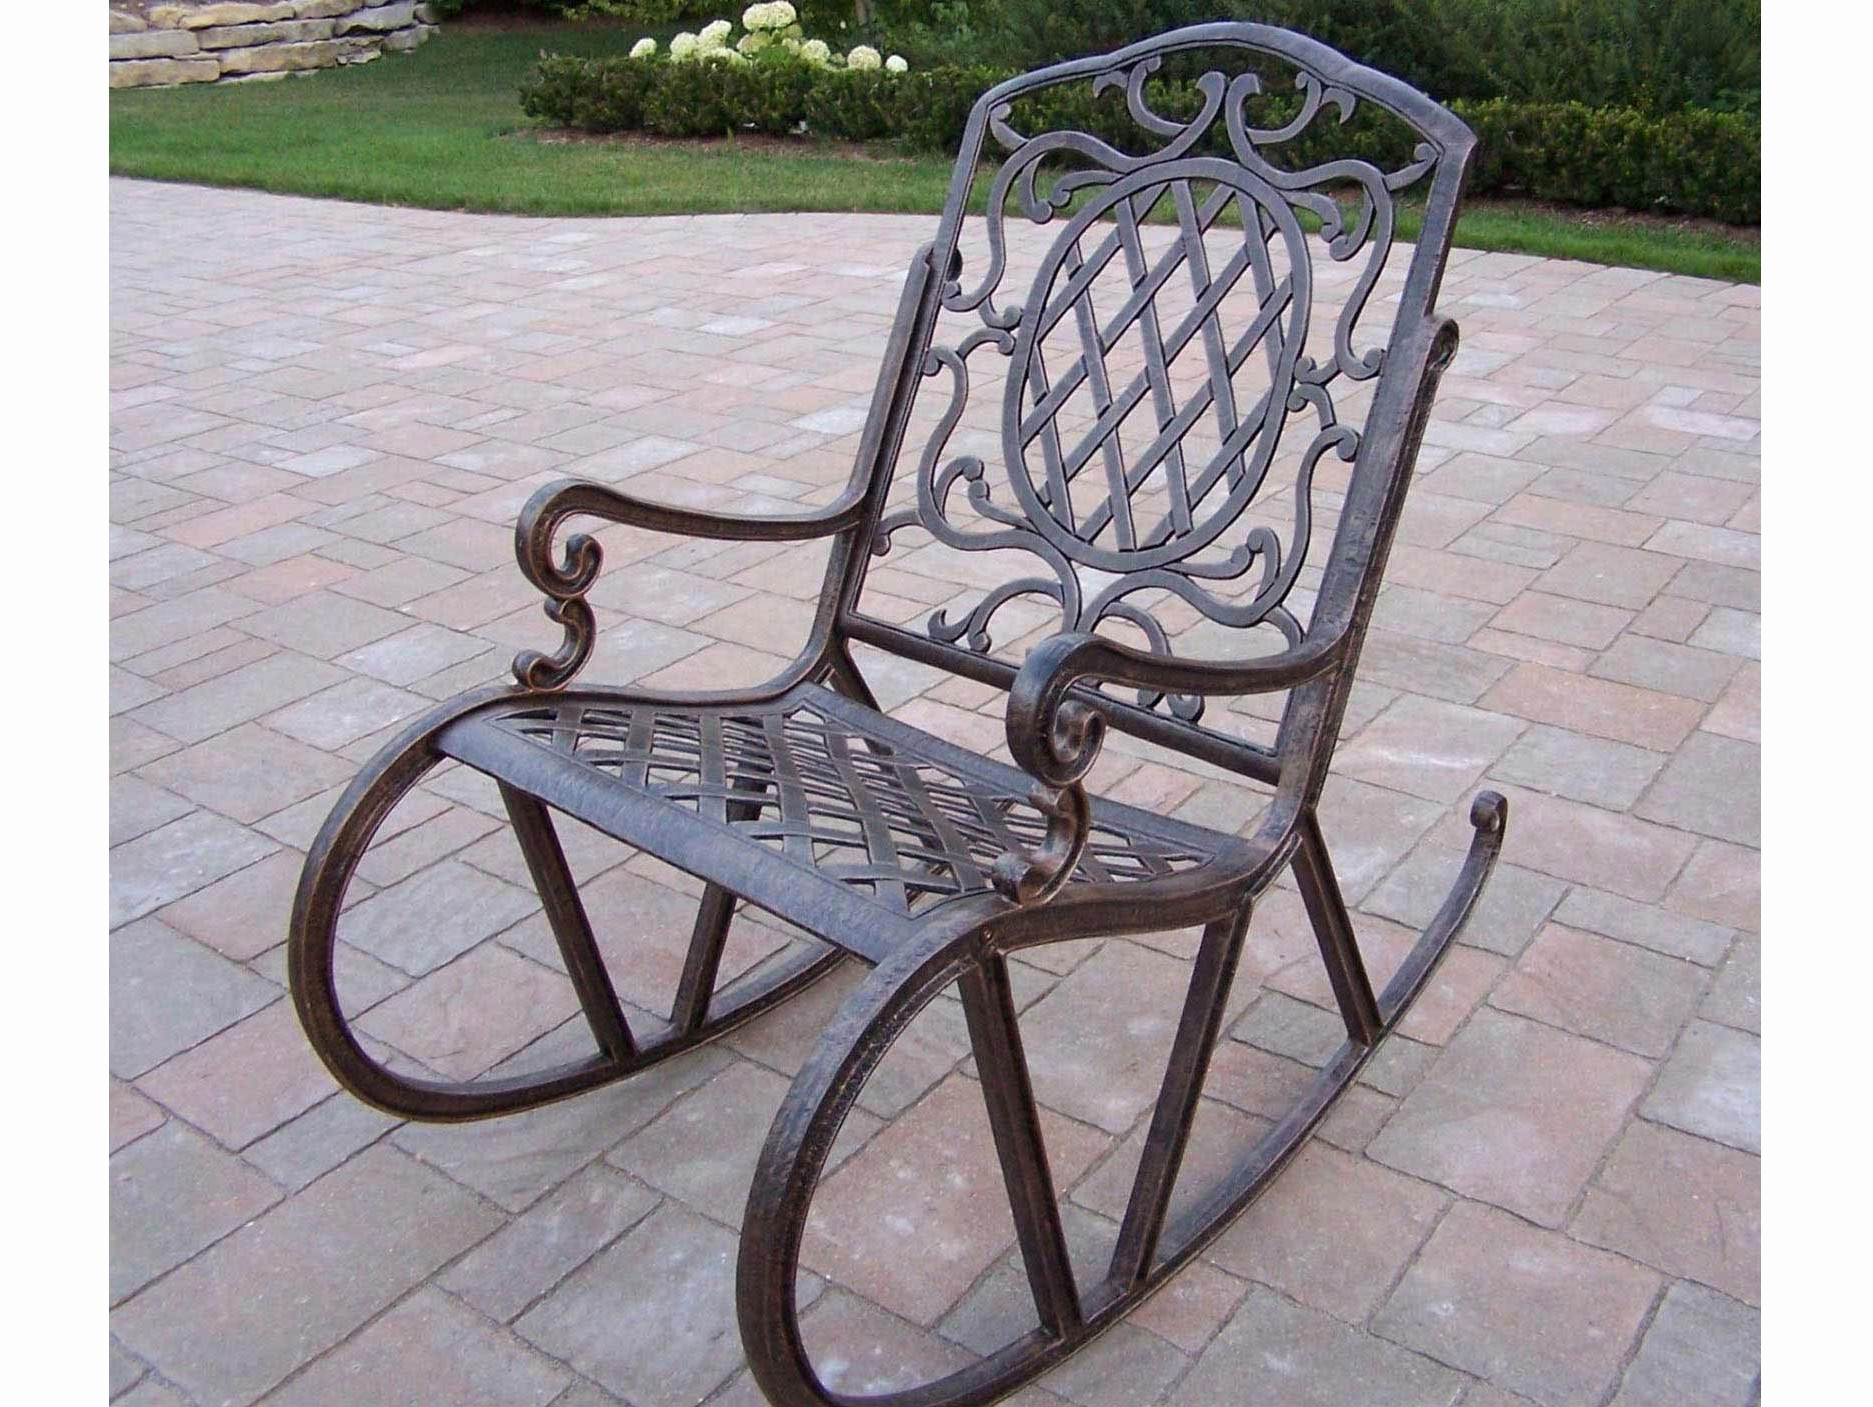 Wrought Iron Patio Furniture Rocking Chairs Ideas Antique Vintage Inside Recent Vintage Outdoor Rocking Chairs (View 15 of 15)